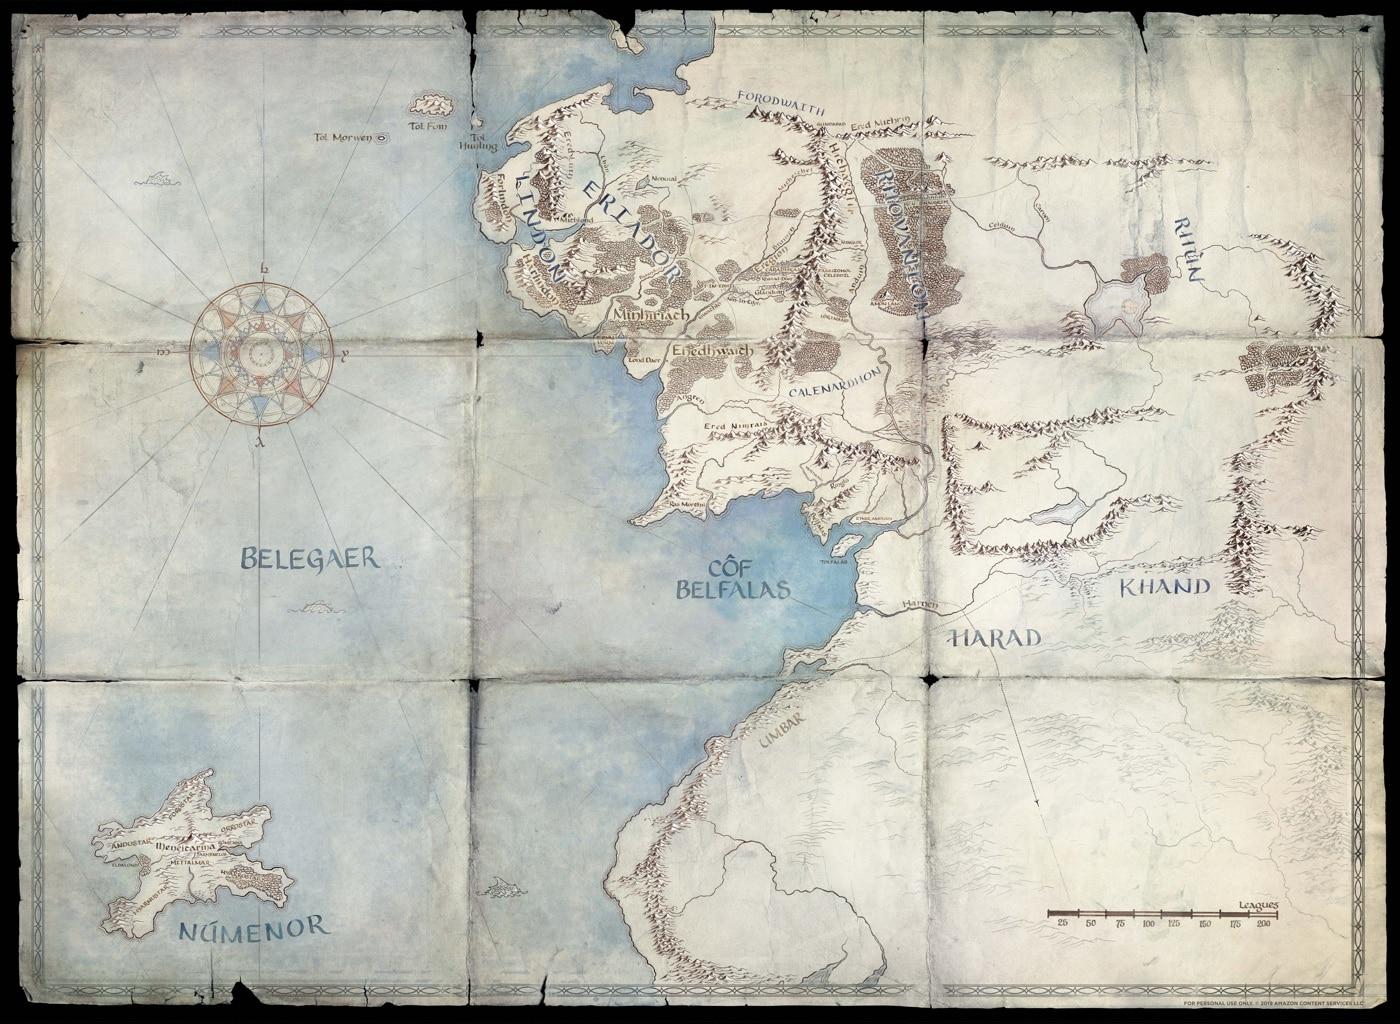 Amazon's map of Middle-earth and Numenor